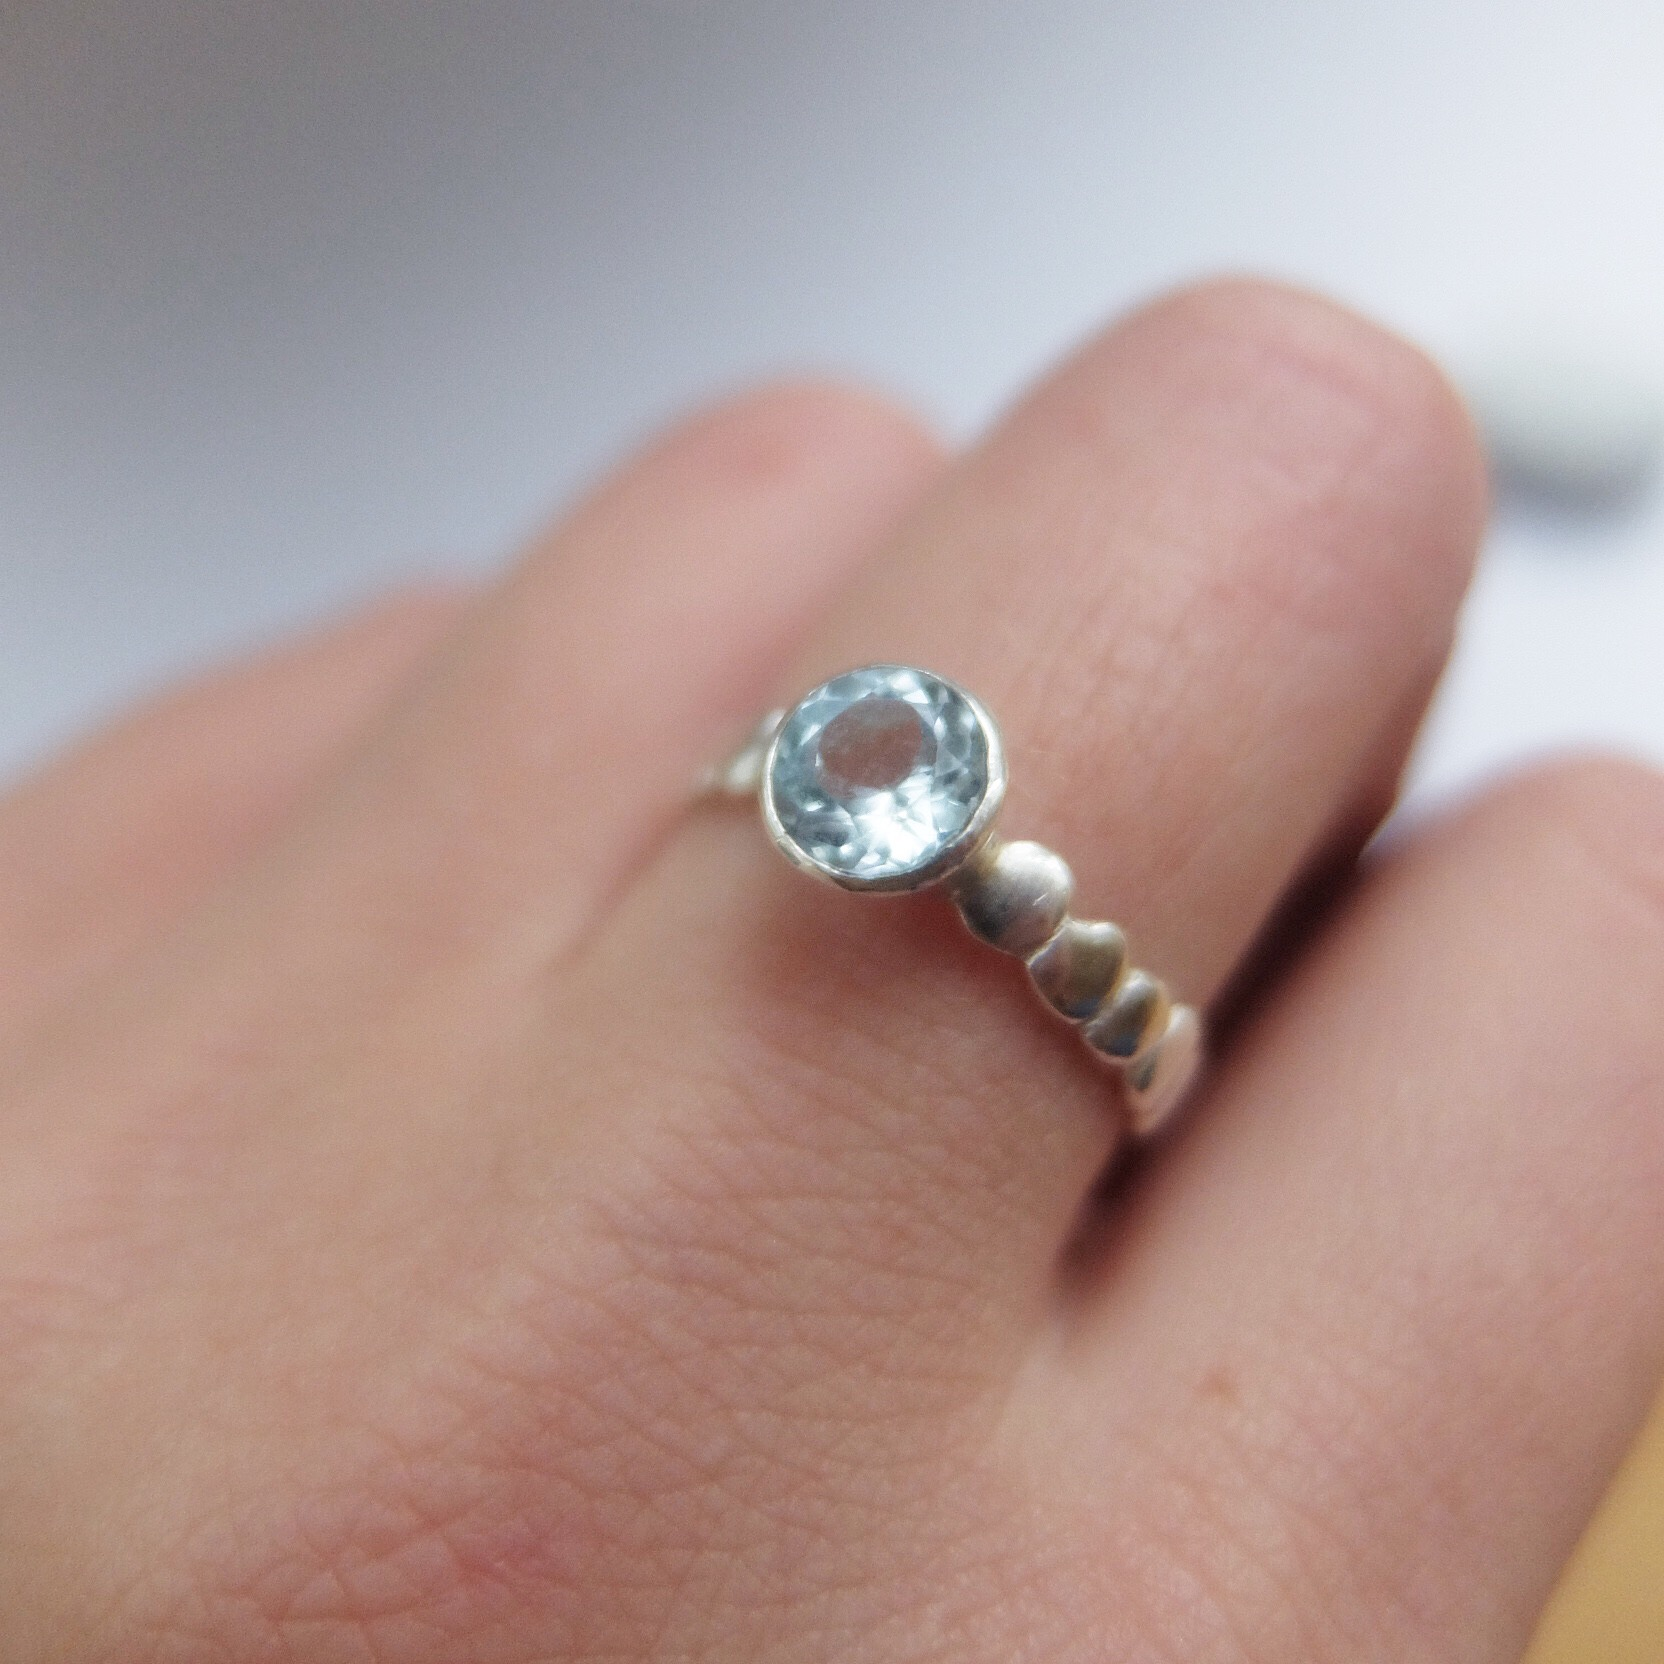 Alternative contemporary engagement rings pebble pebbles band sea inspired coast surfer blue stone gemstone handmade contemporary craft jewellery rings ring jasmine bowden uk devon cornwall round .jpg